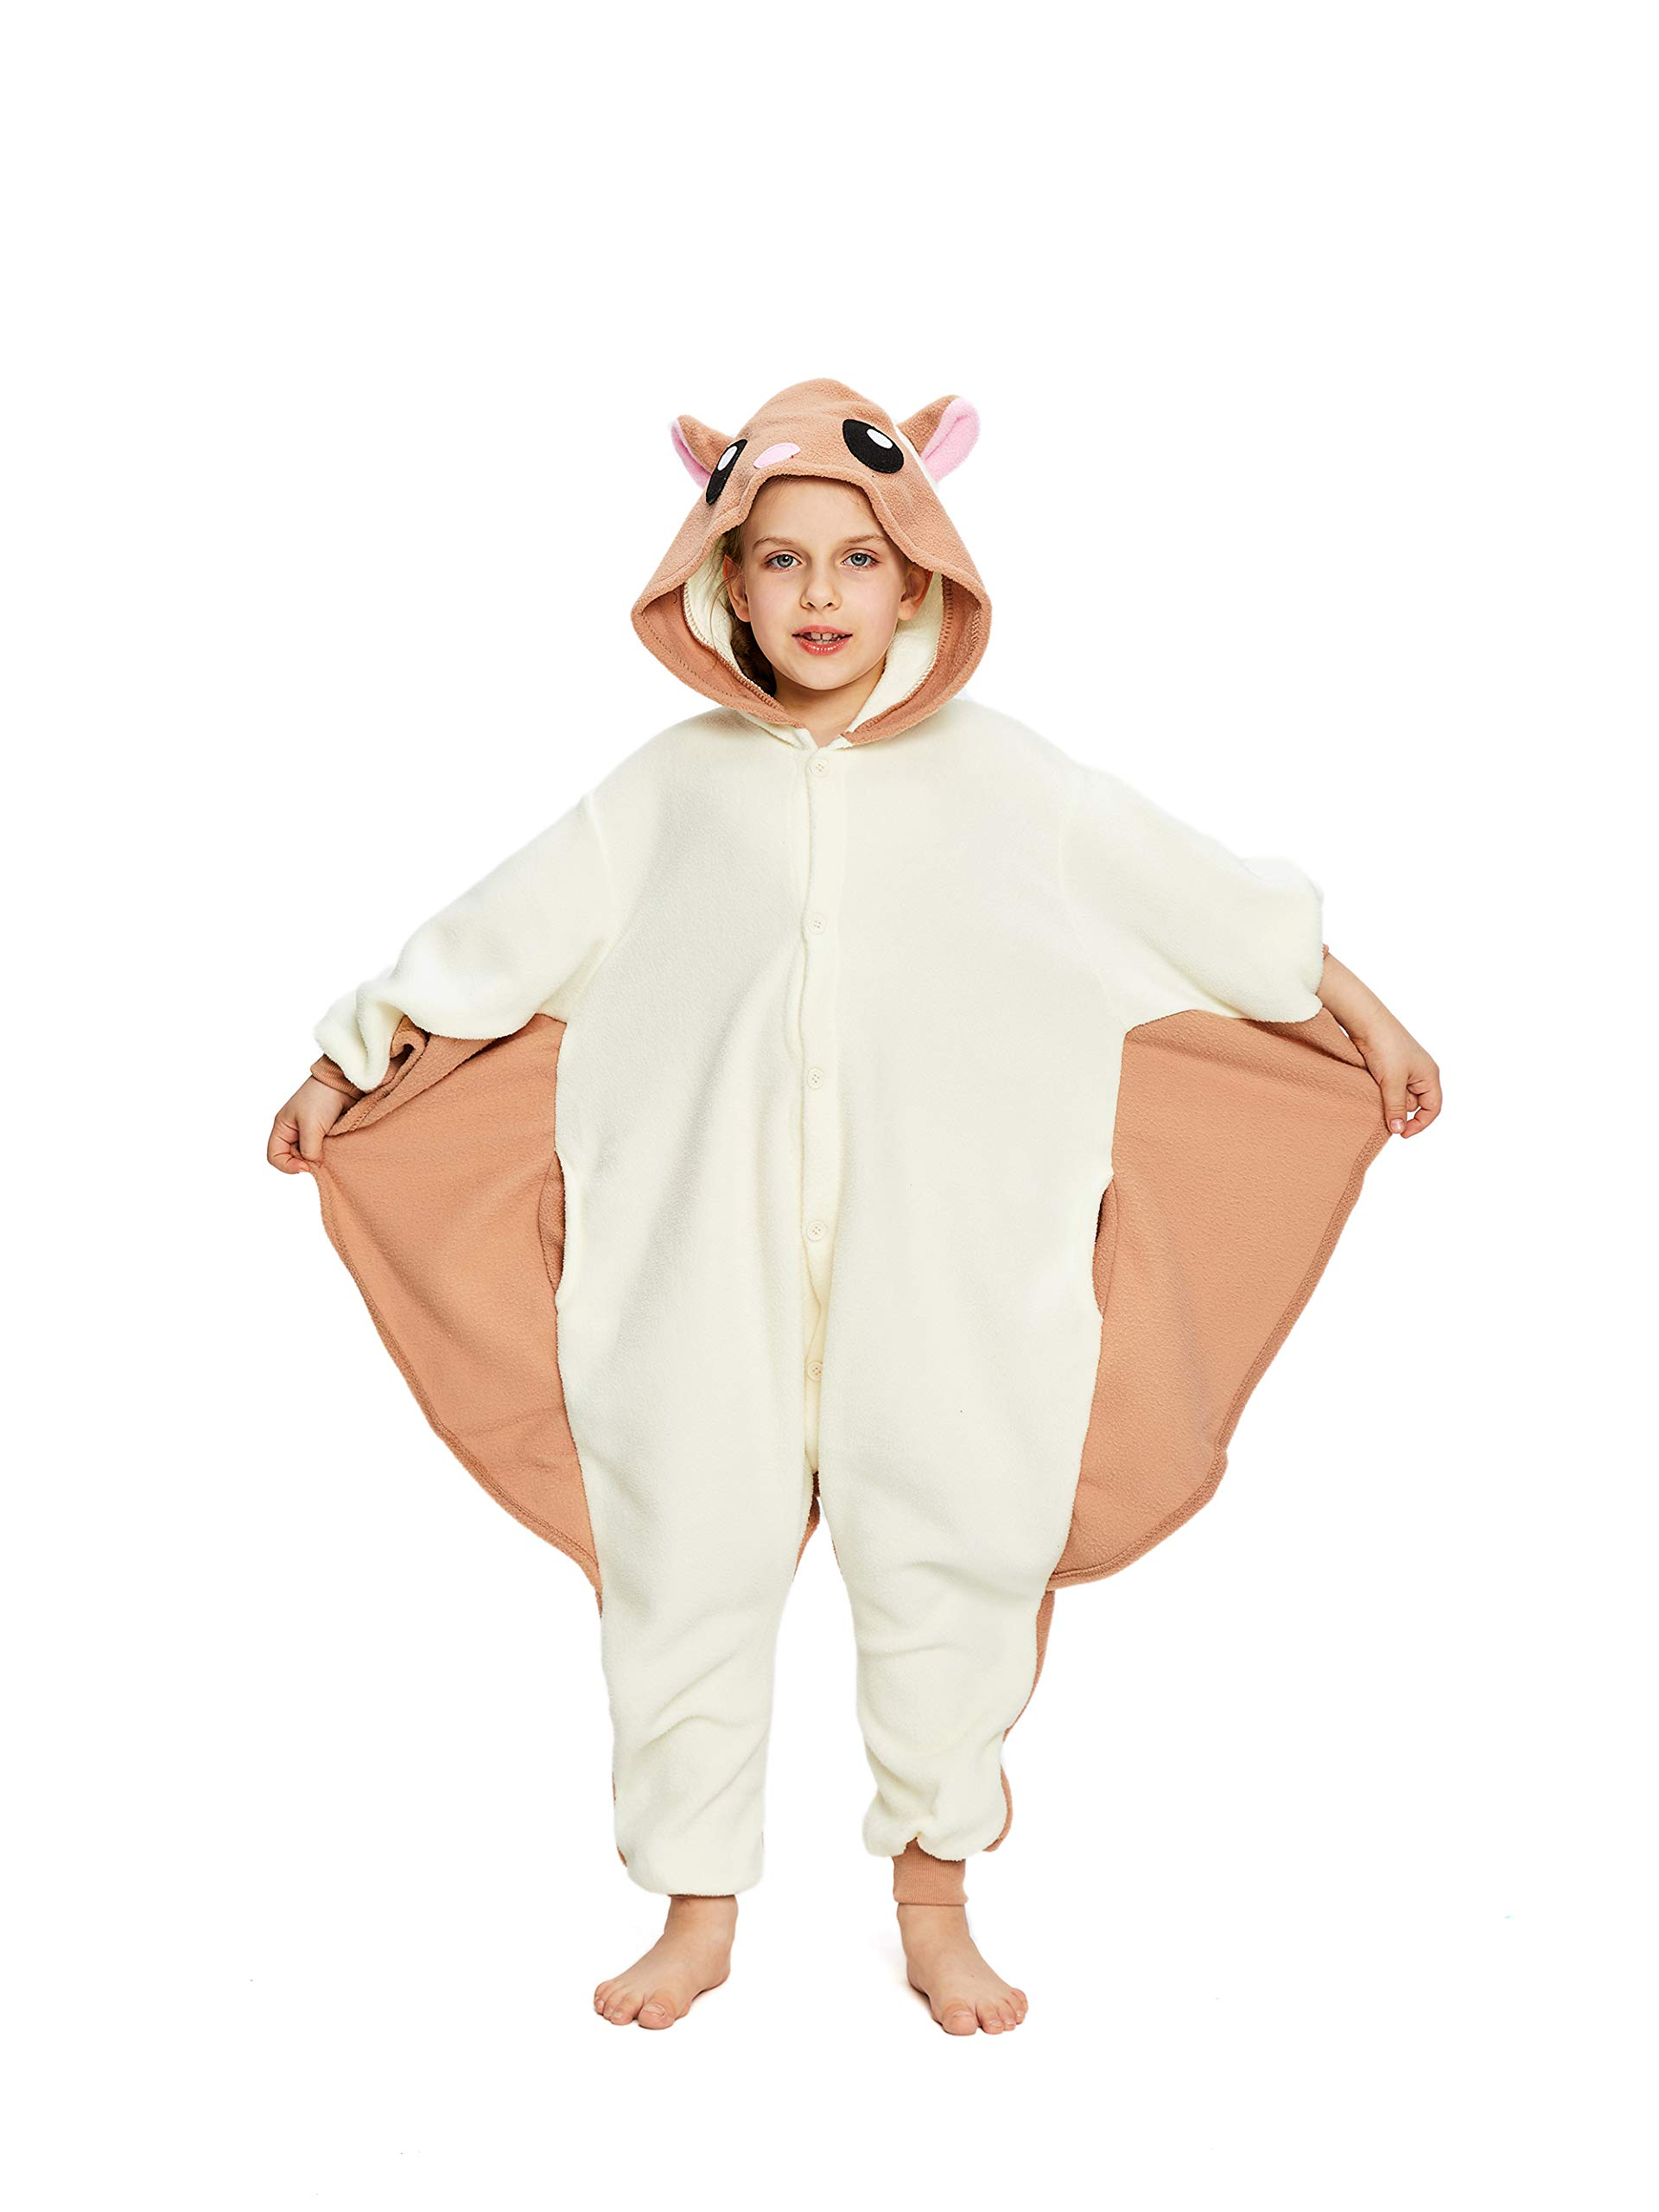 Childrens Animal costumes Boys Girls Unisex Pajamas Fancy Dress outfit Cosplay Kangaroo